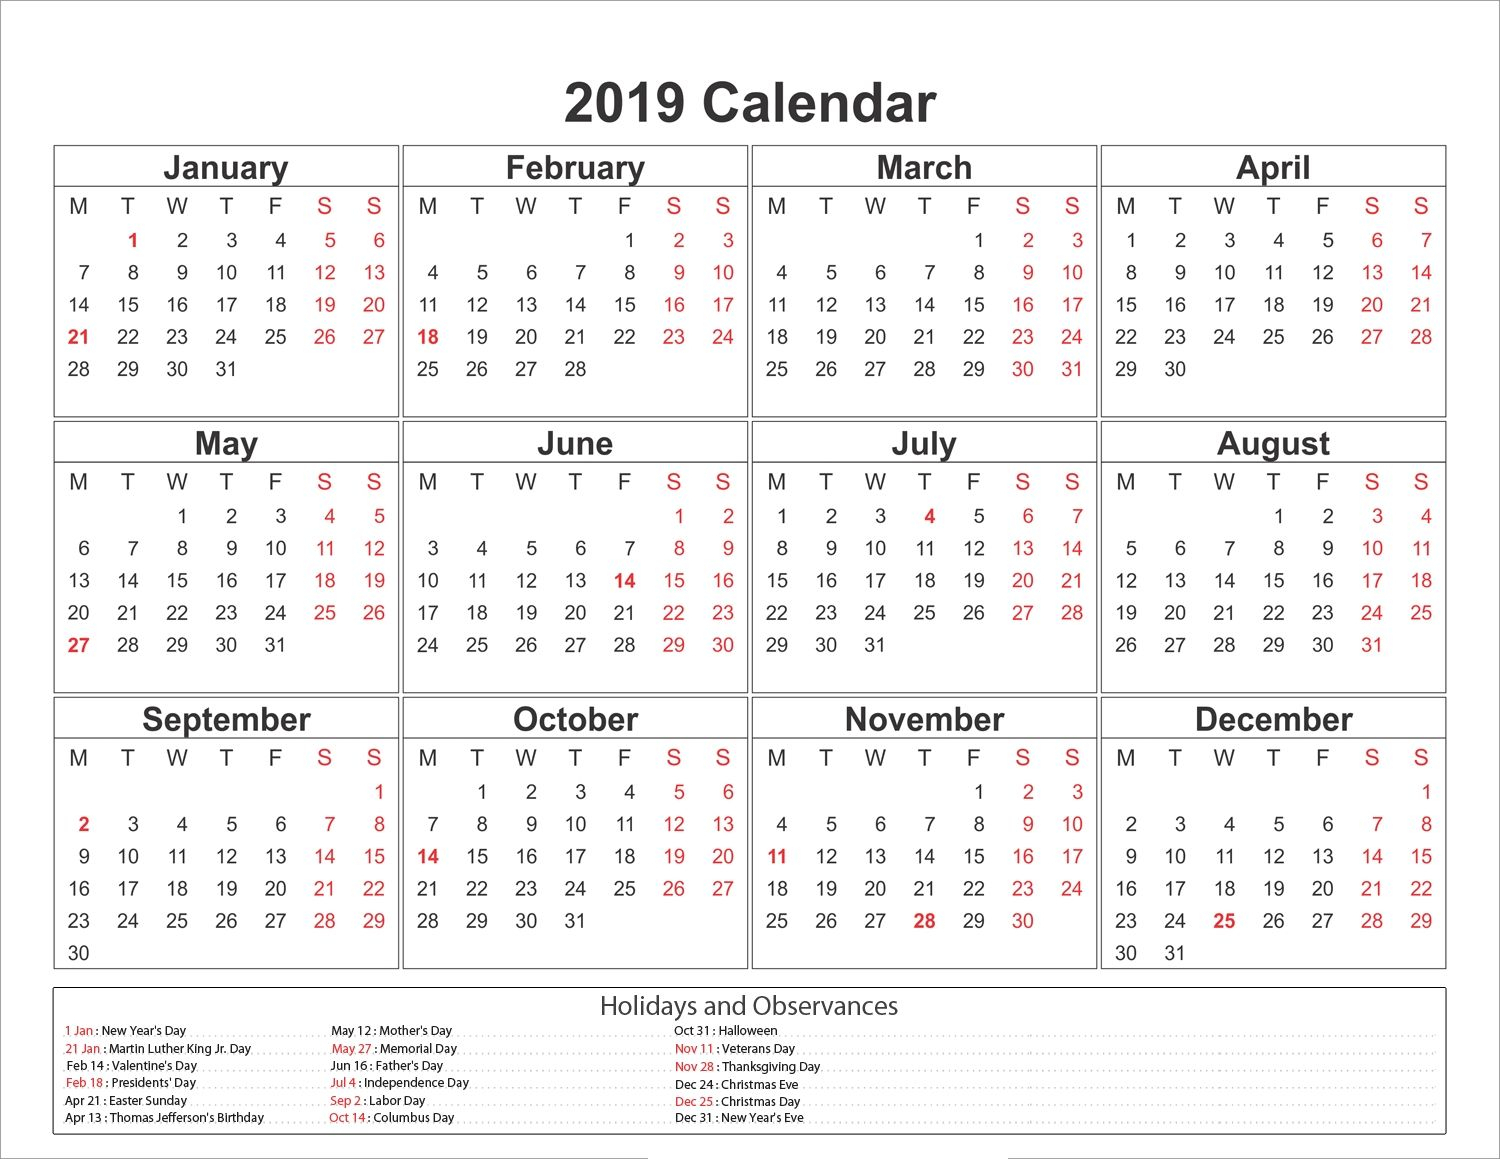 Blank Printable Calendar 2019 With Holidays Printablesheltermonthly with Free Printable Calendars 2019-2020 With Holidays